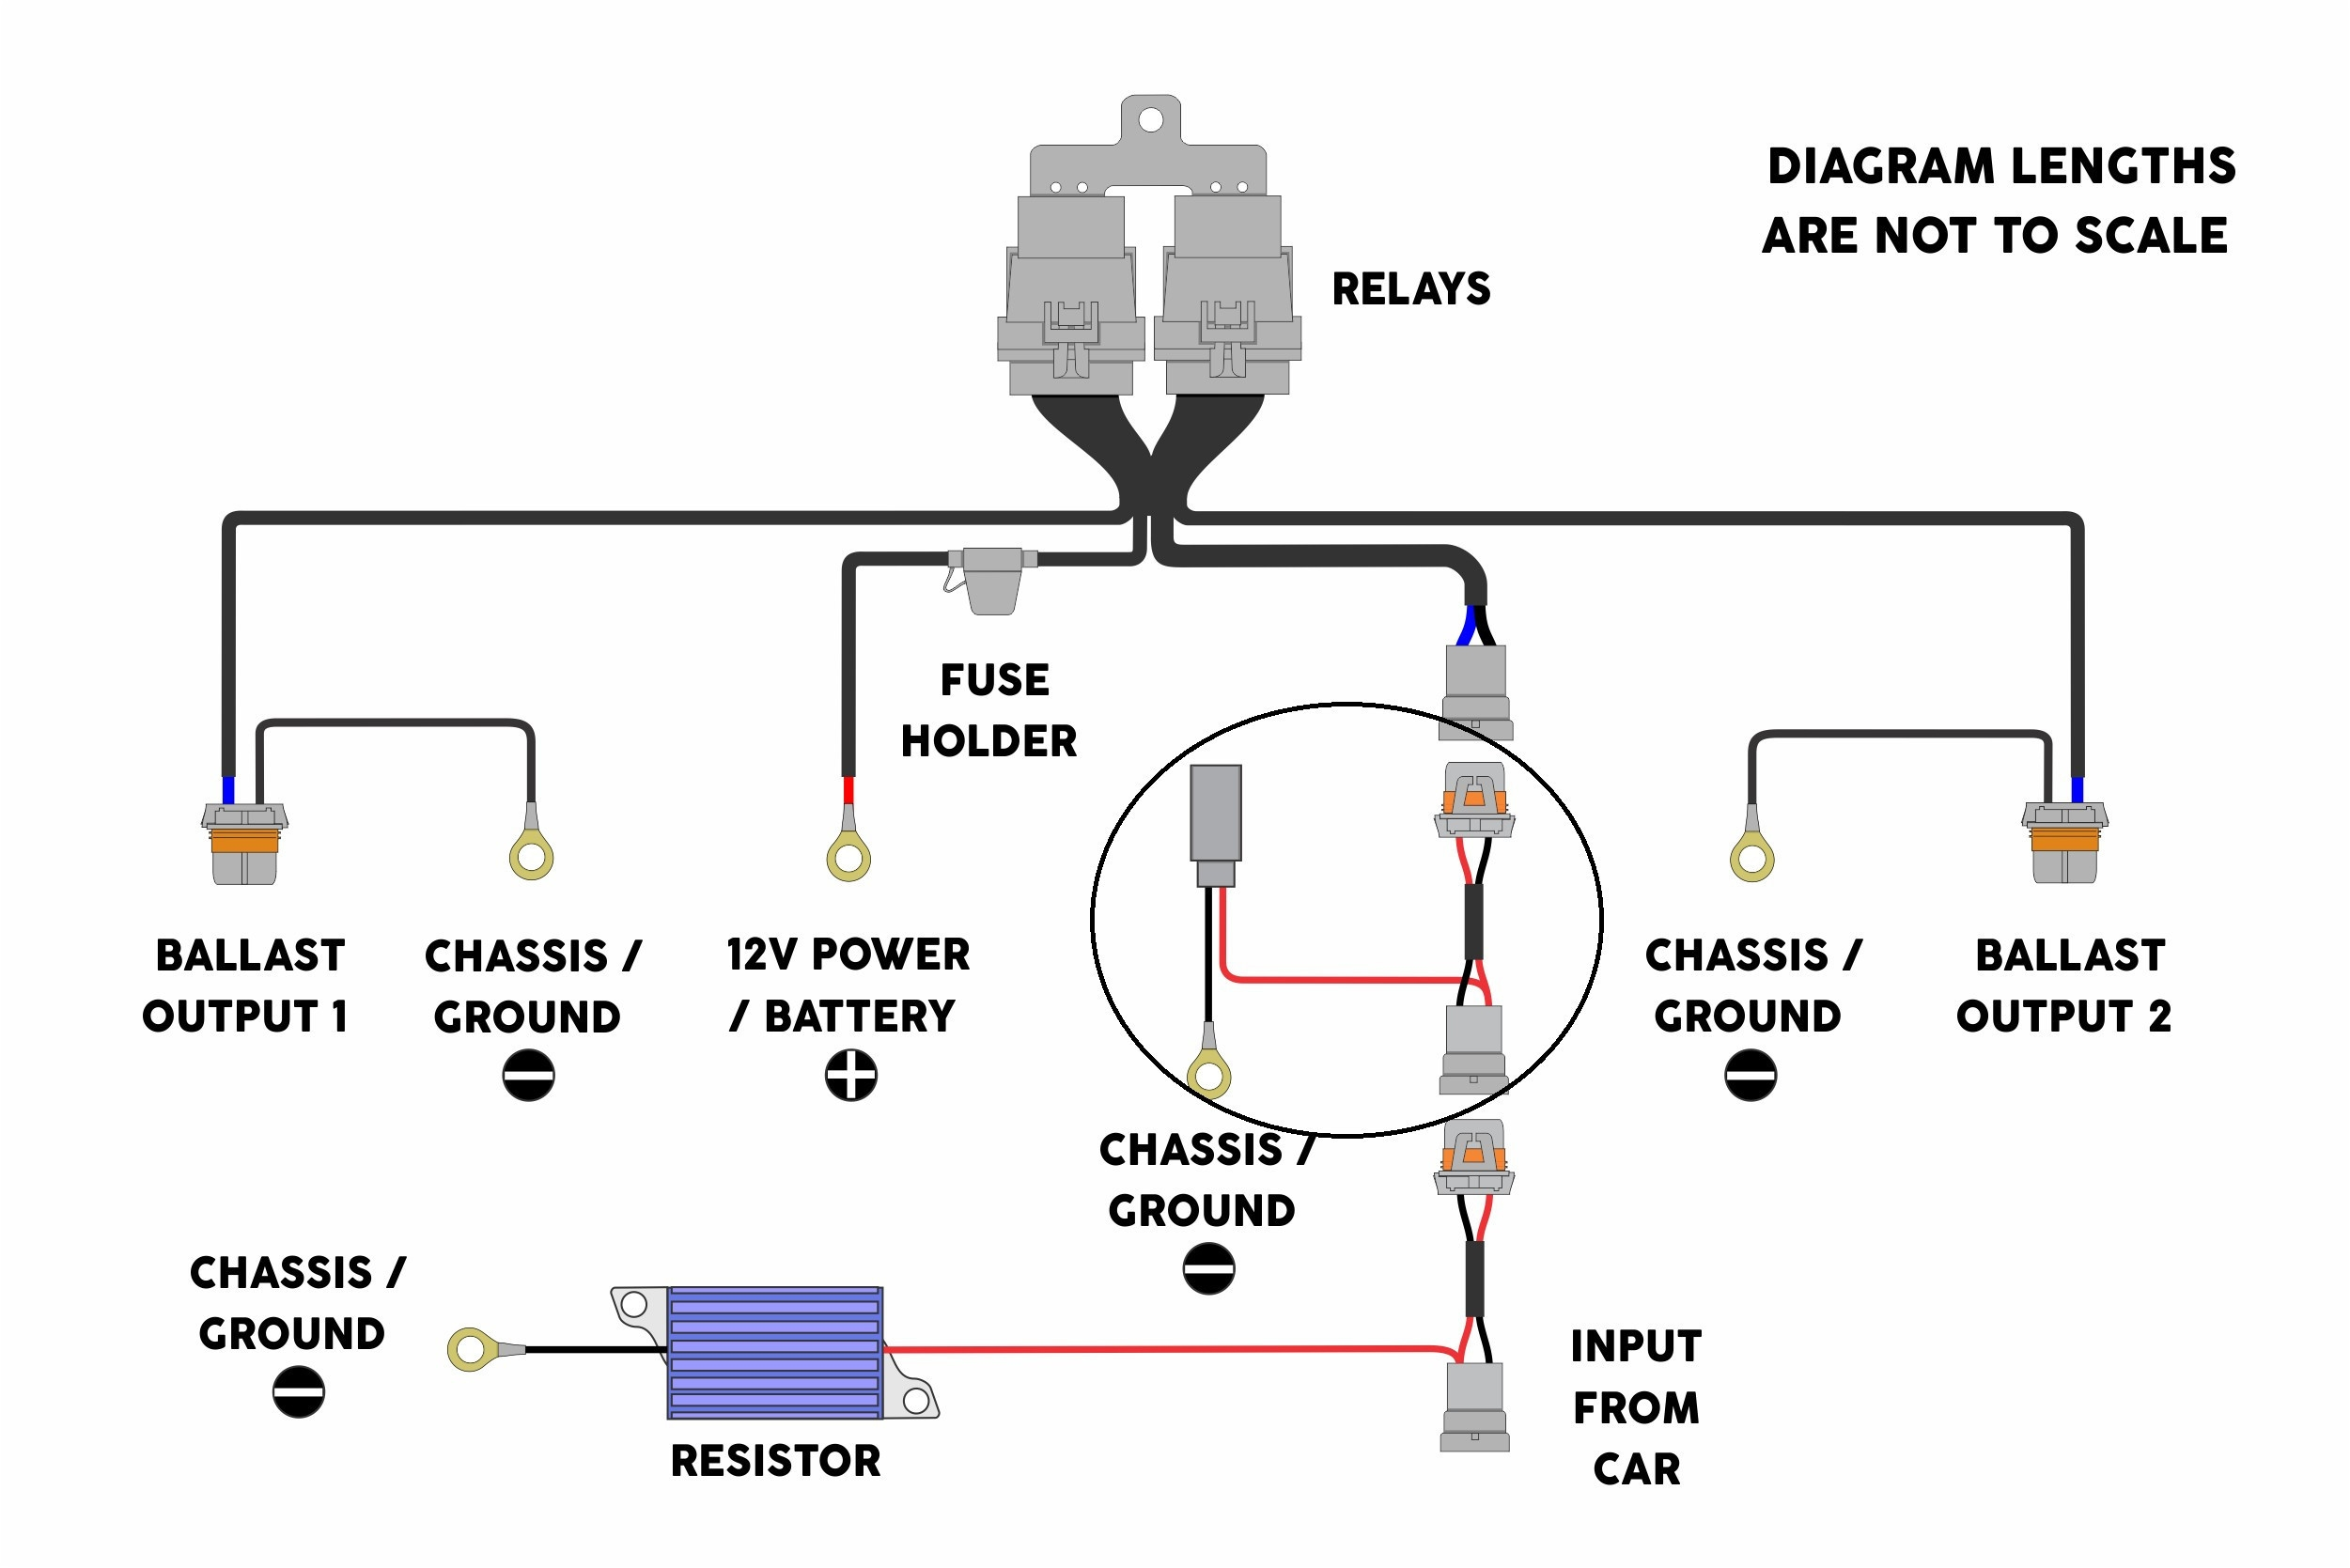 hid wiring diagram with relay Download-Wiring Diagram For Xenon Lights 2018 Wiring Diagram Hid Lights Relay Inspirationa Hid Wiring Diagram 5-a